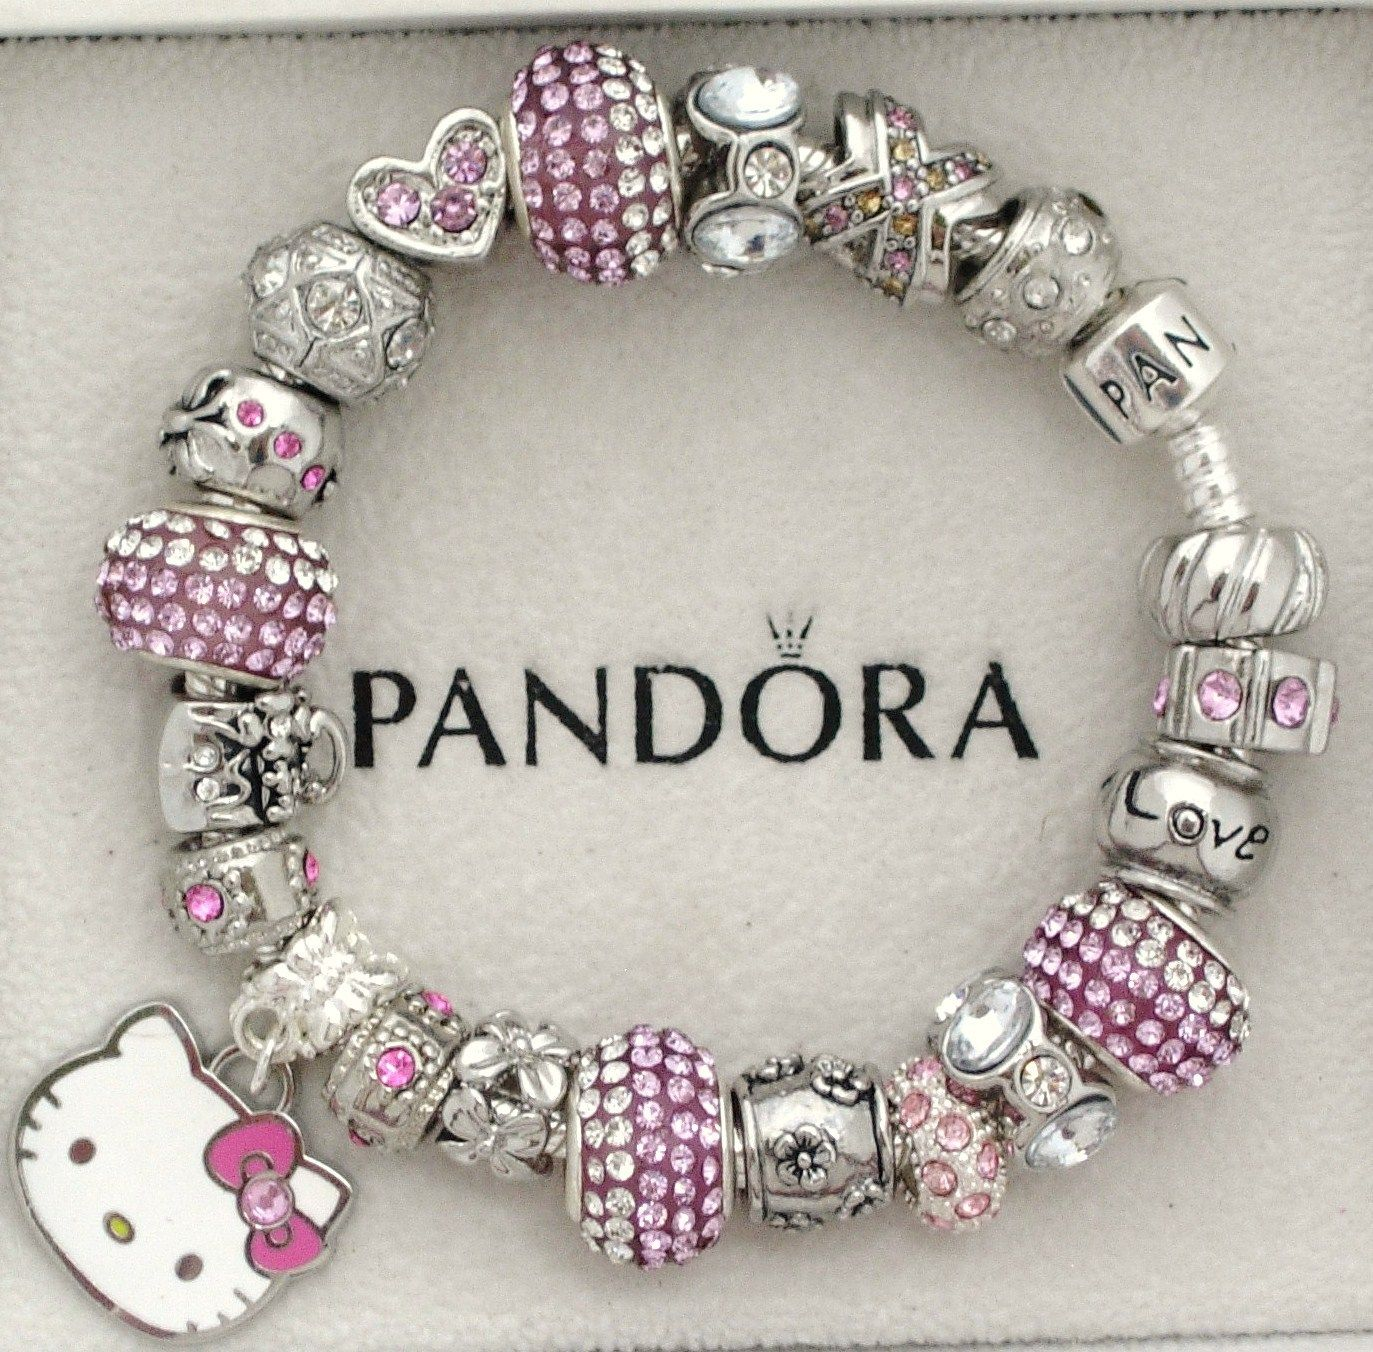 1192a6293 PANDORA | Interlocking love - received this from my lovely daughter for  Valentines day!! only $35.92